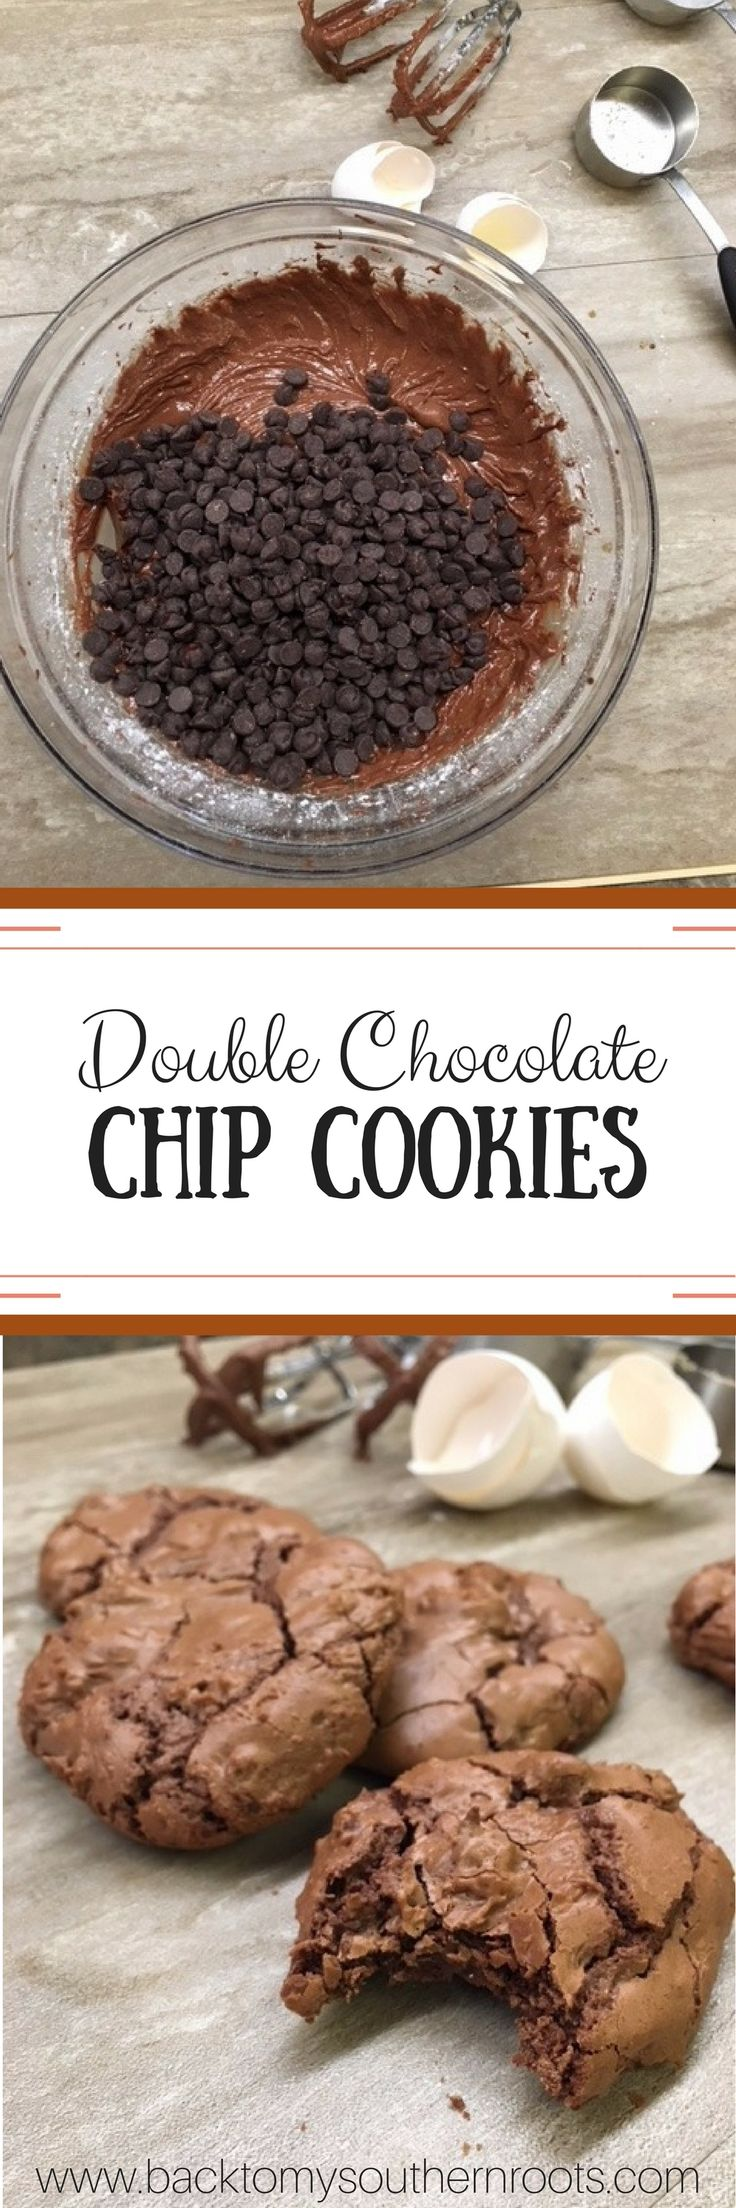 This is the most delicious cookie for holiday cookie exchange parties - hands down! I have made these for holiday cookie exchange parties and won for best taste! This dessert is a wonderful treat and great gift for friends, teachers, and neighbors. And, it's an easy recipe! via @juliepollittbacktomysouthernroots